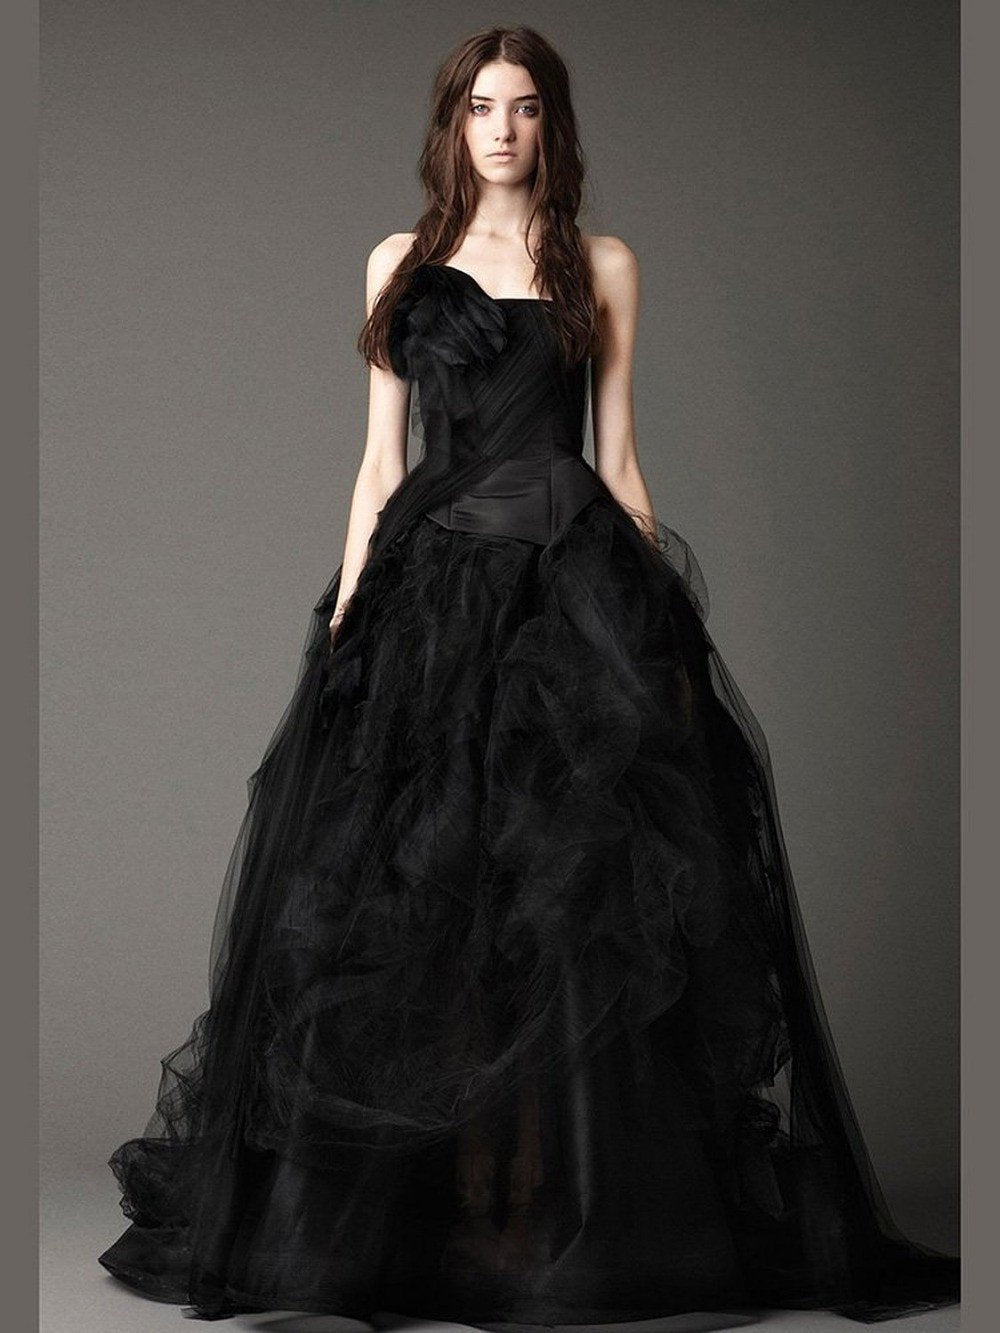 Strapless Puffy Gothic Gown